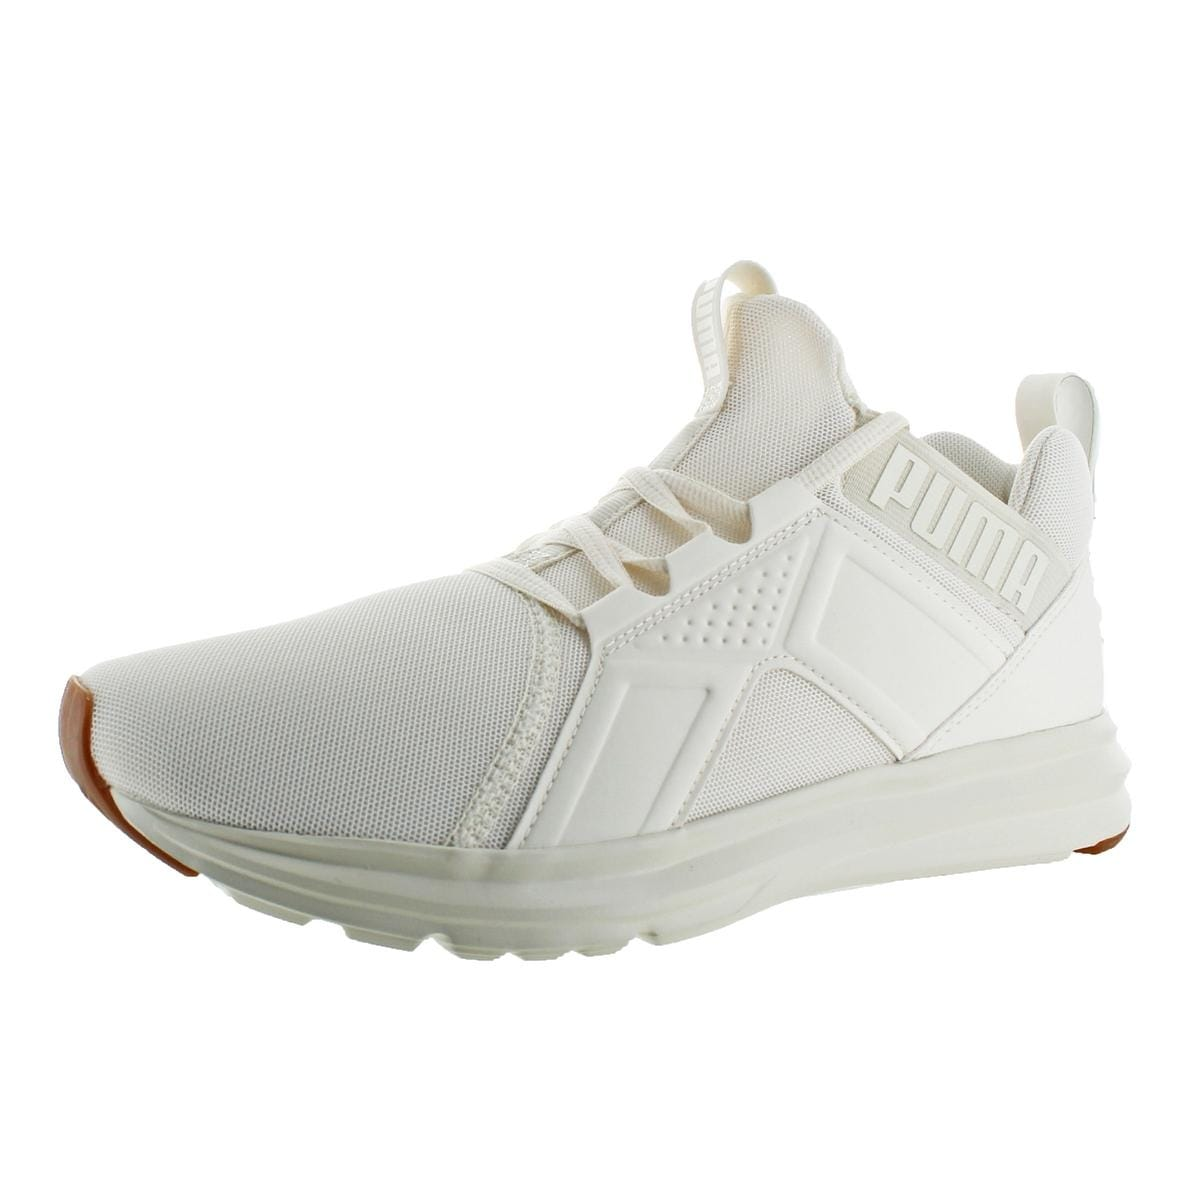 9e1acb30e836 Shop Puma Mens Enzo Mesh Running Shoes Softfoam Trainers - Free Shipping On  Orders Over  45 - Overstock - 21936282